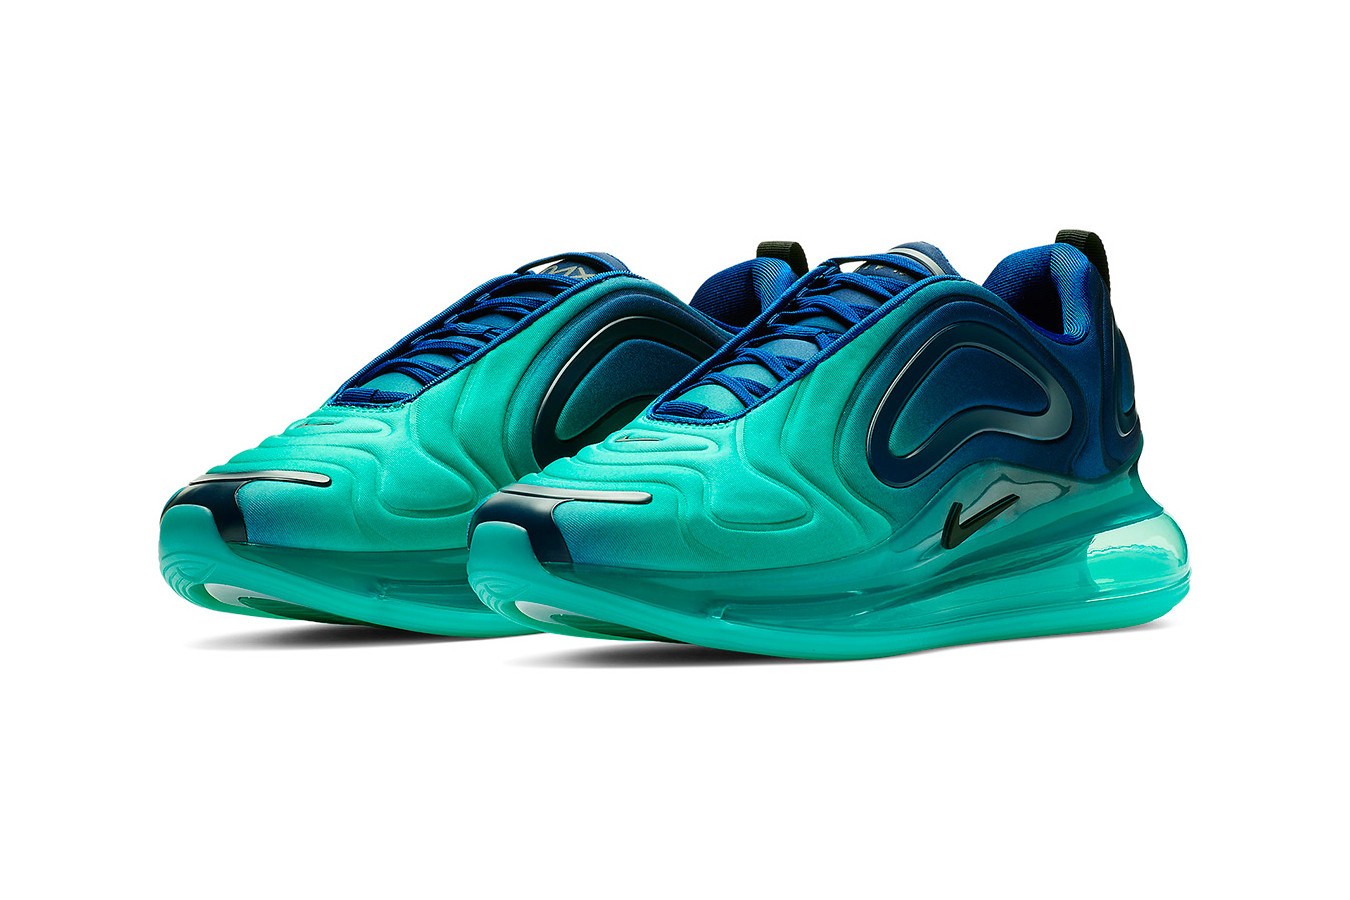 quality design 7847b 107b3 Nike s Air Max 720 Gets Dripped in Striking